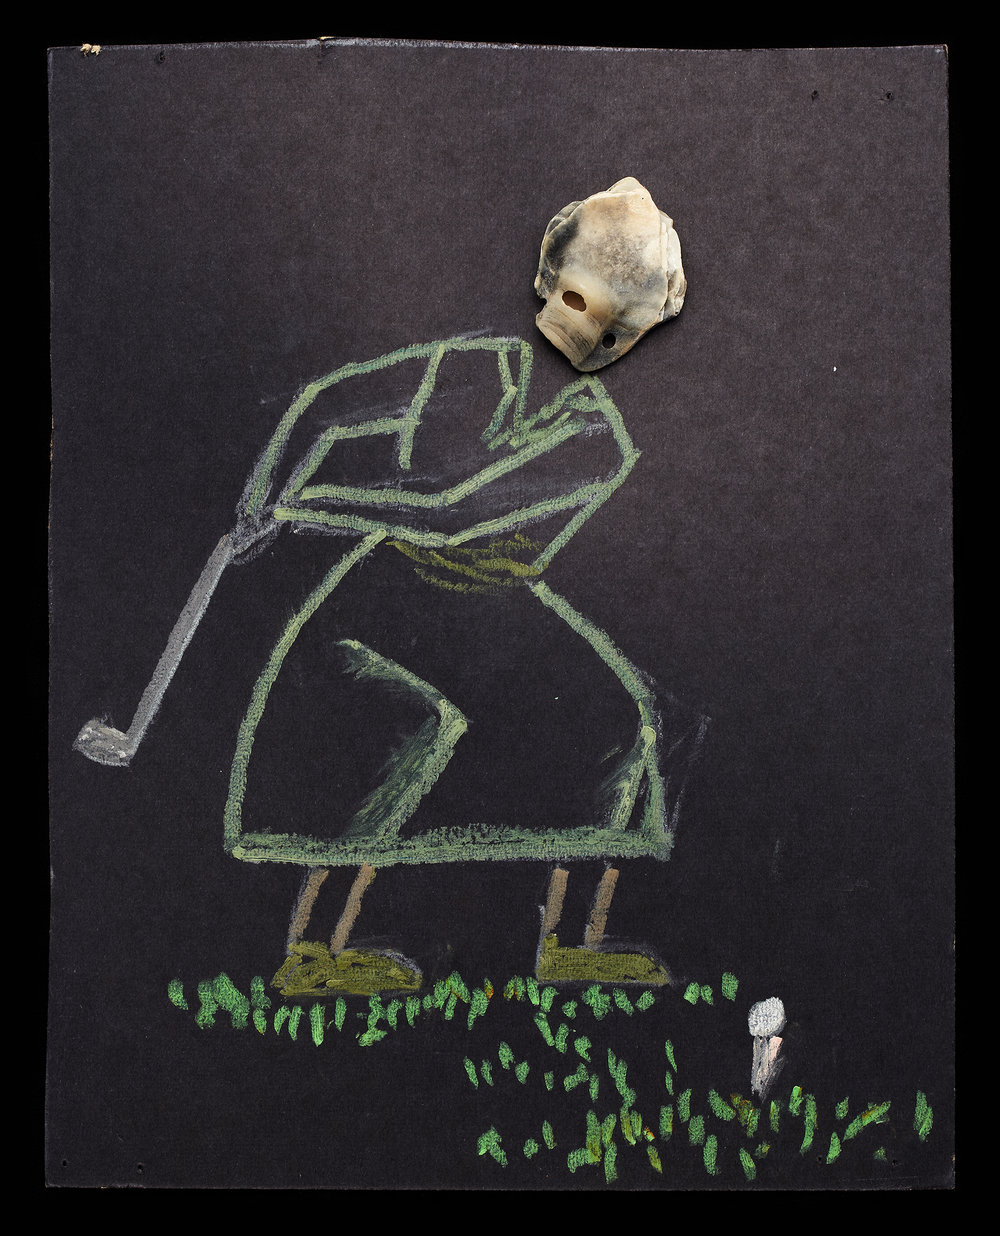 ShellArt-Golfer by Thomas Wilson Laney